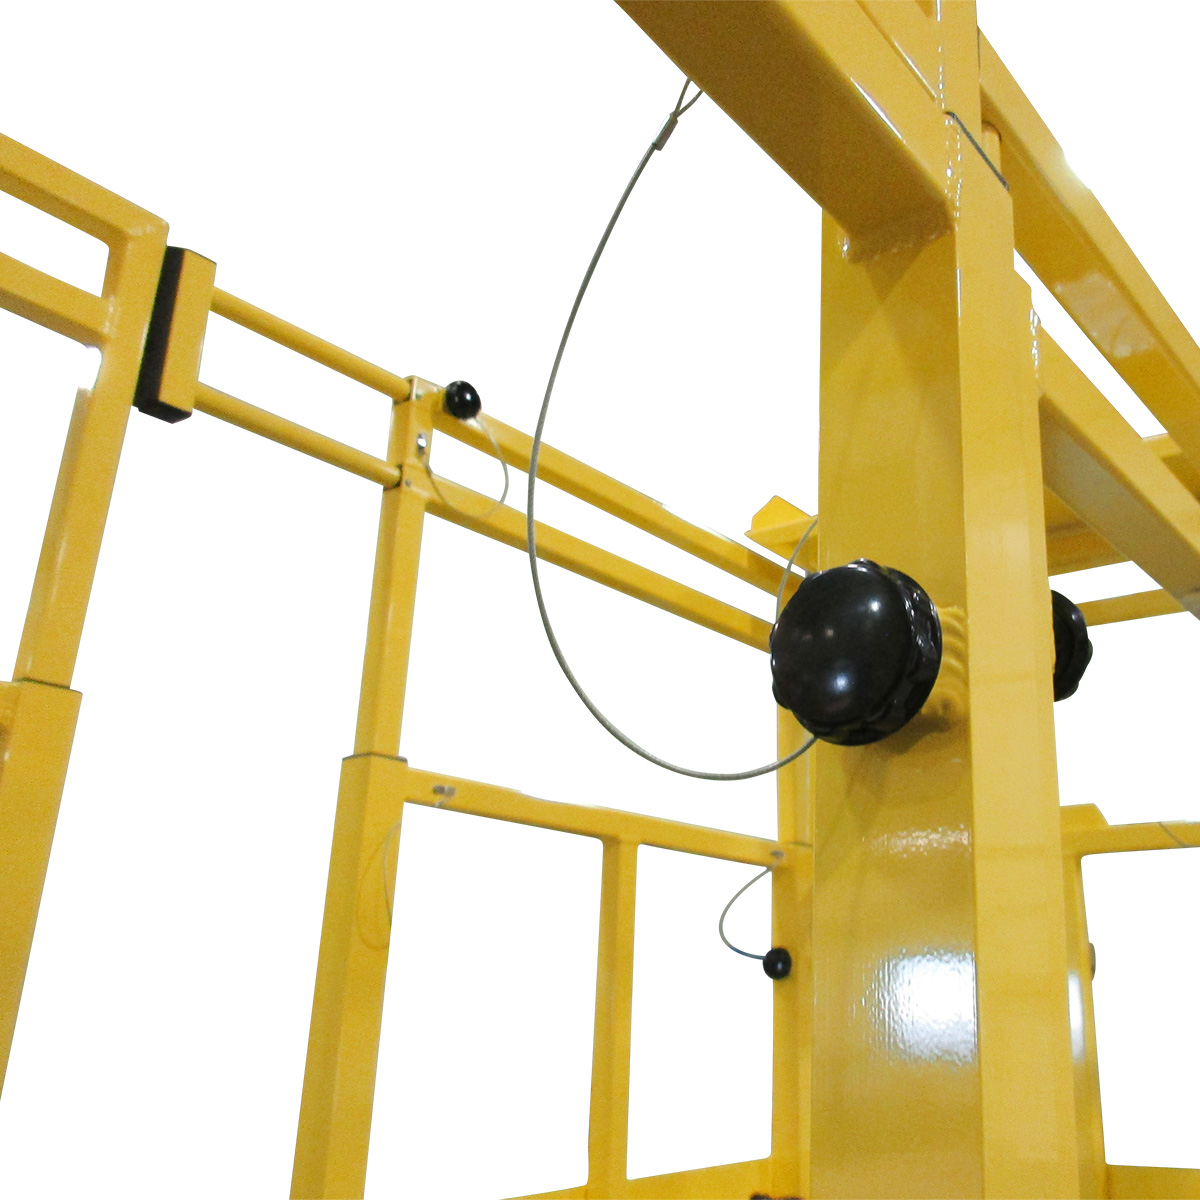 CH47 Chinook Helicopter – Daily Maintenance OSHA compliant, vertically adjustable handrails and horizontally adjustable guardrails for 100% fall prevention.